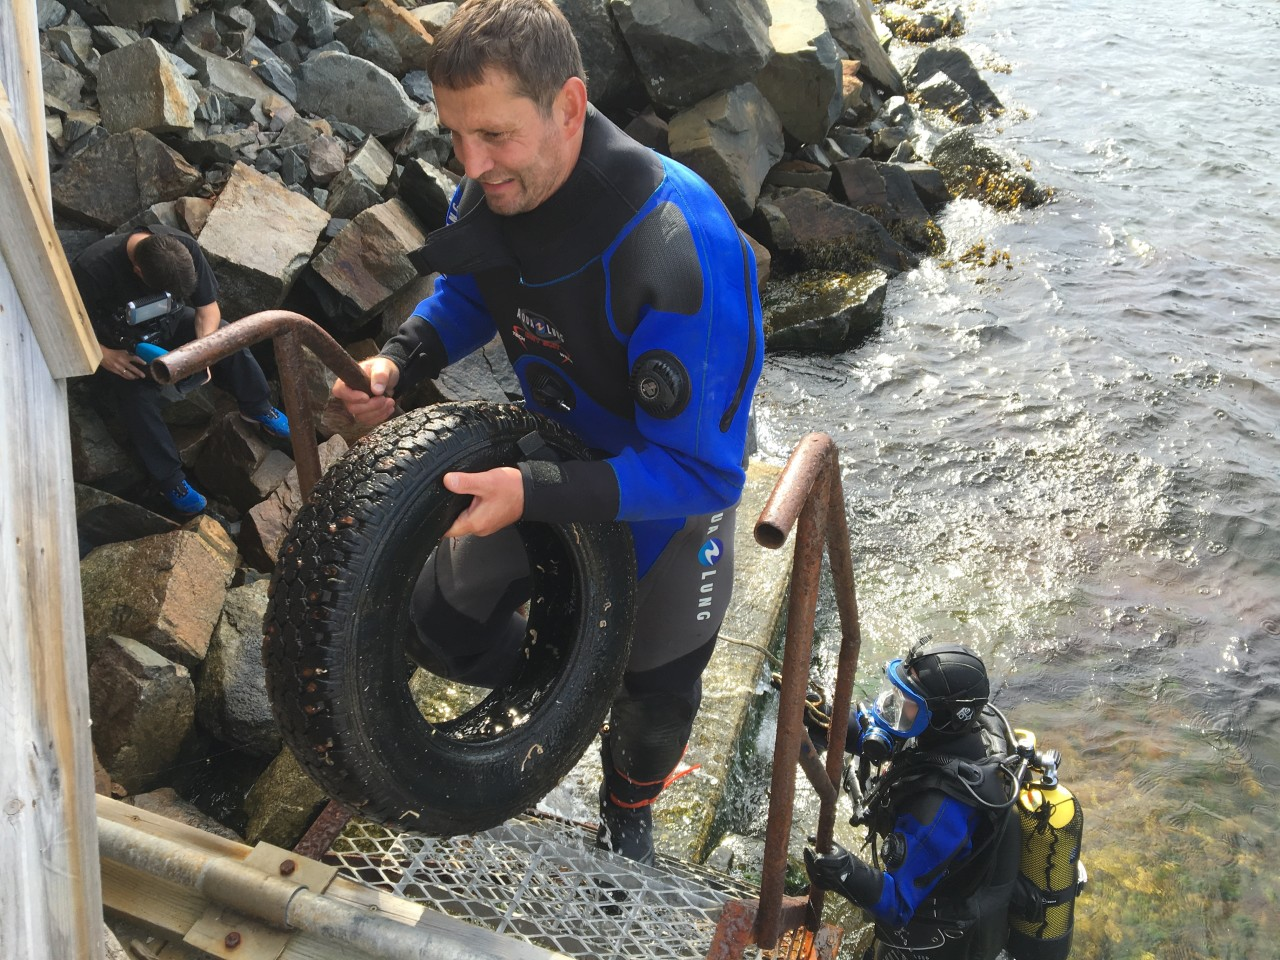 A car tyre was found just off the dock.